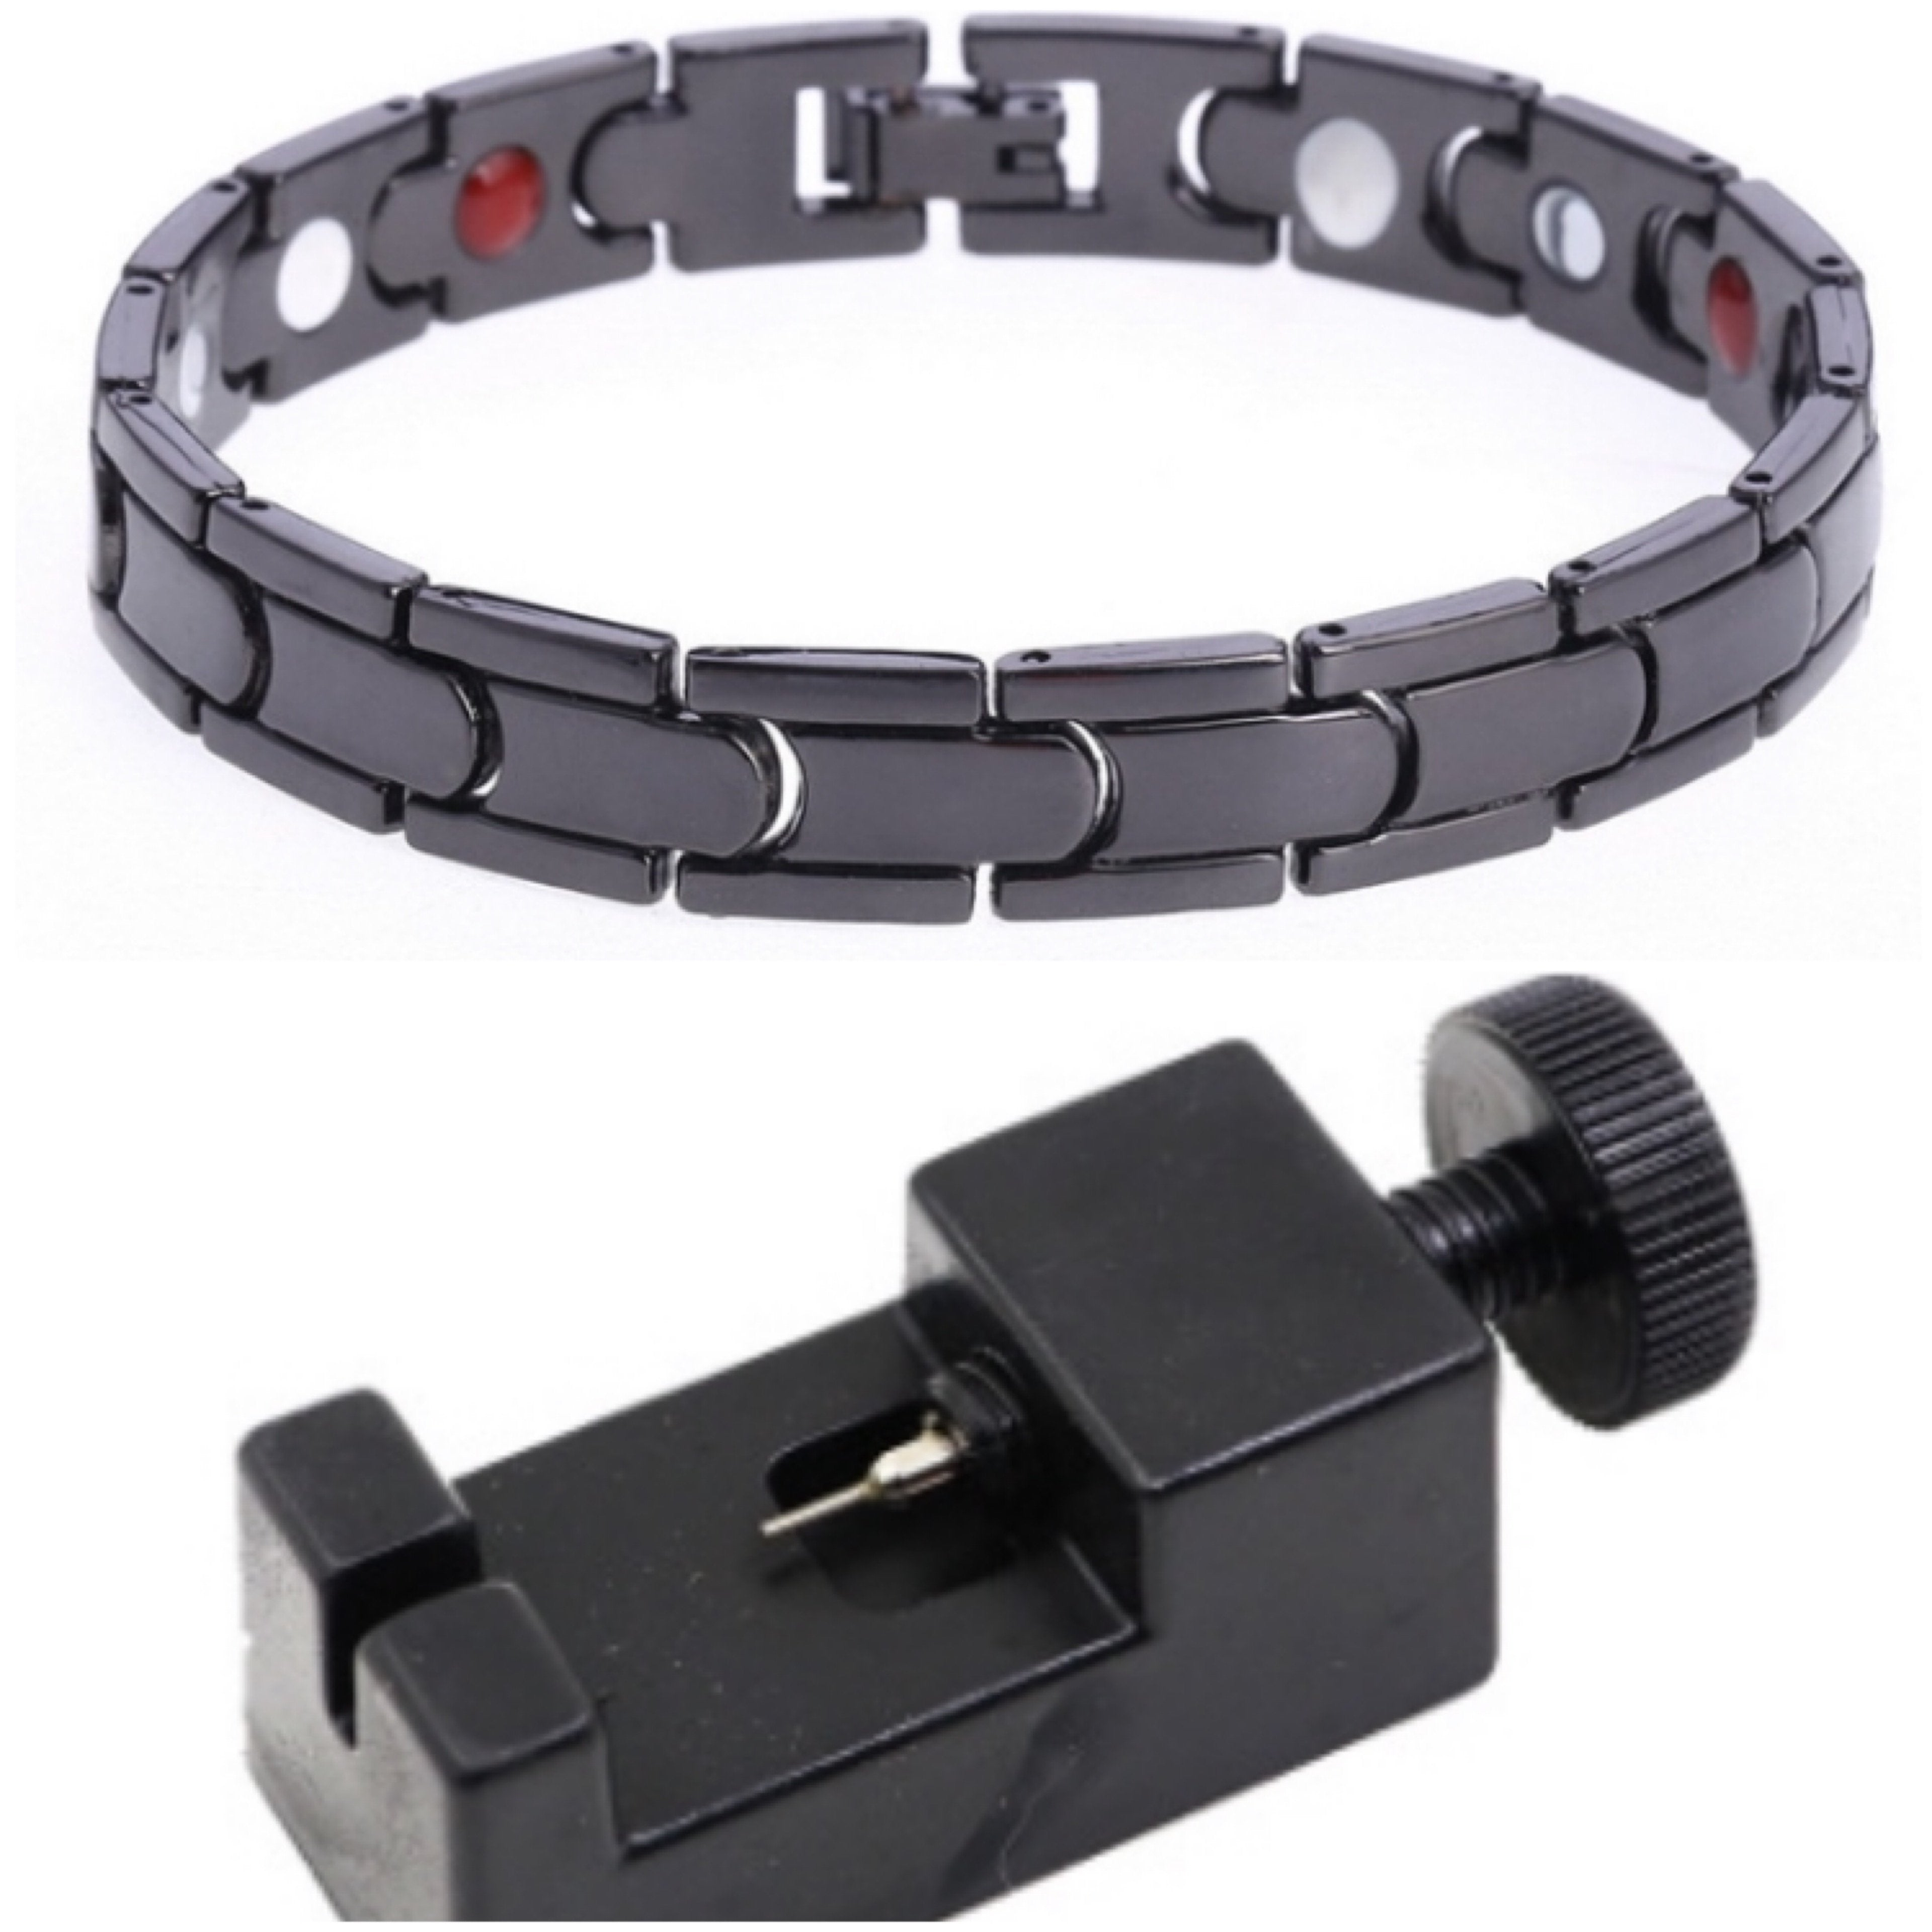 Posture-it Energy:tm: le bracelet +Cutting  machine - Urunigi.com